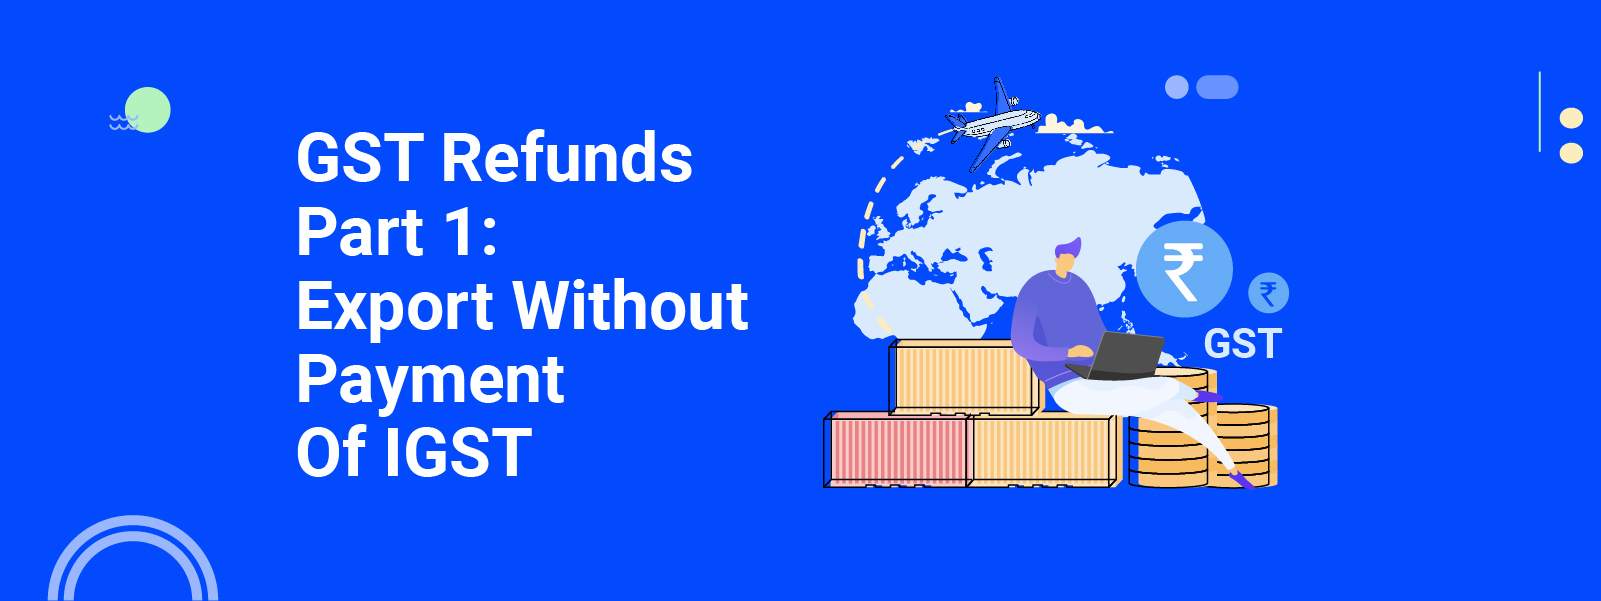 Export of Goods Without Payment Of IGST: GST Refunds Part 1